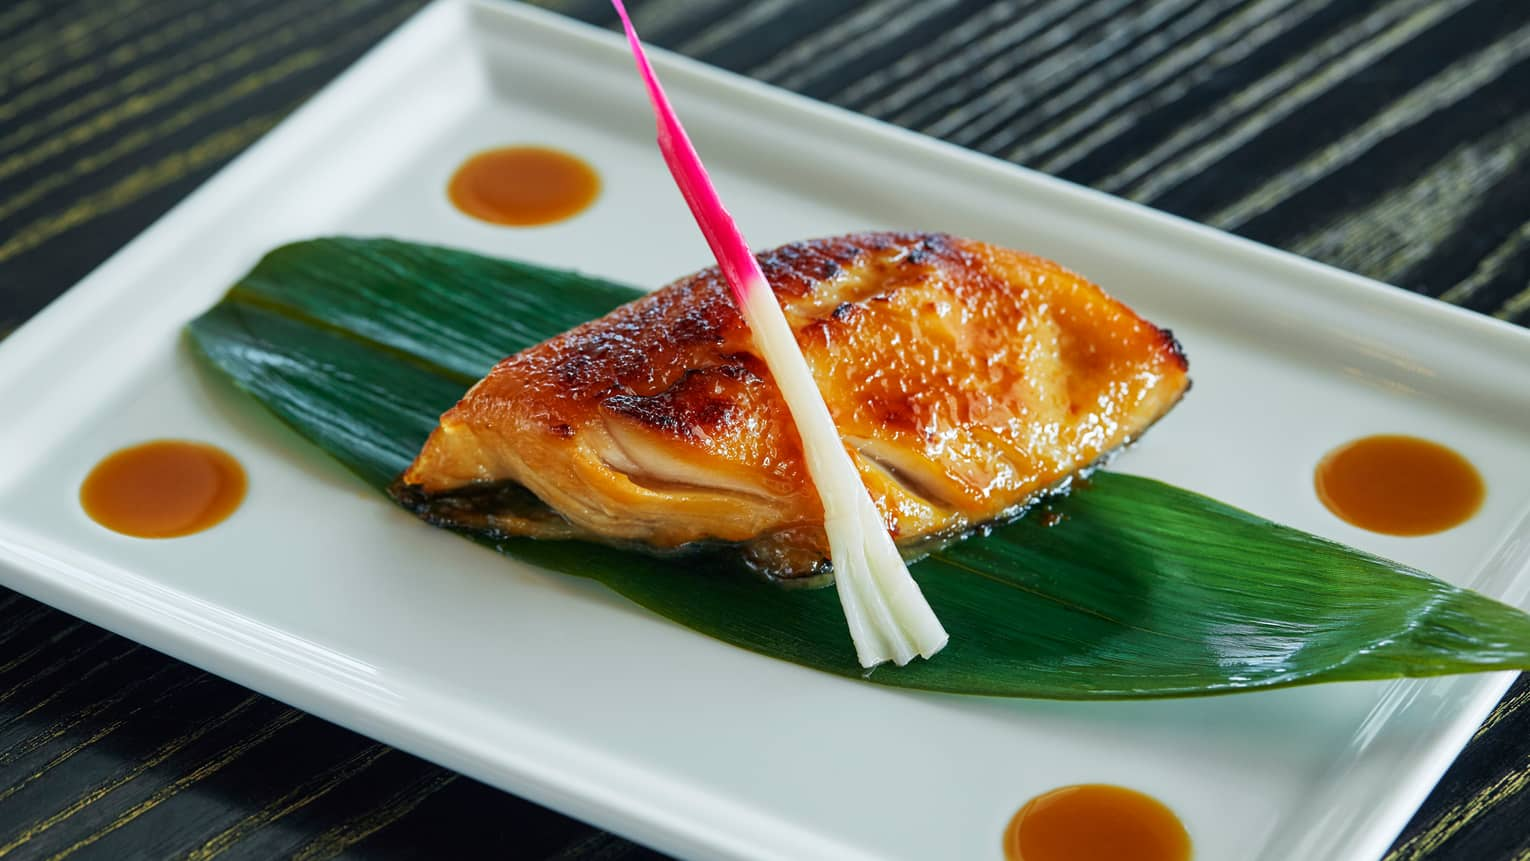 Black Cod Yuzu Miso fish fillet marinated, oven-baked on grilled seafood filet on leaf on white platter